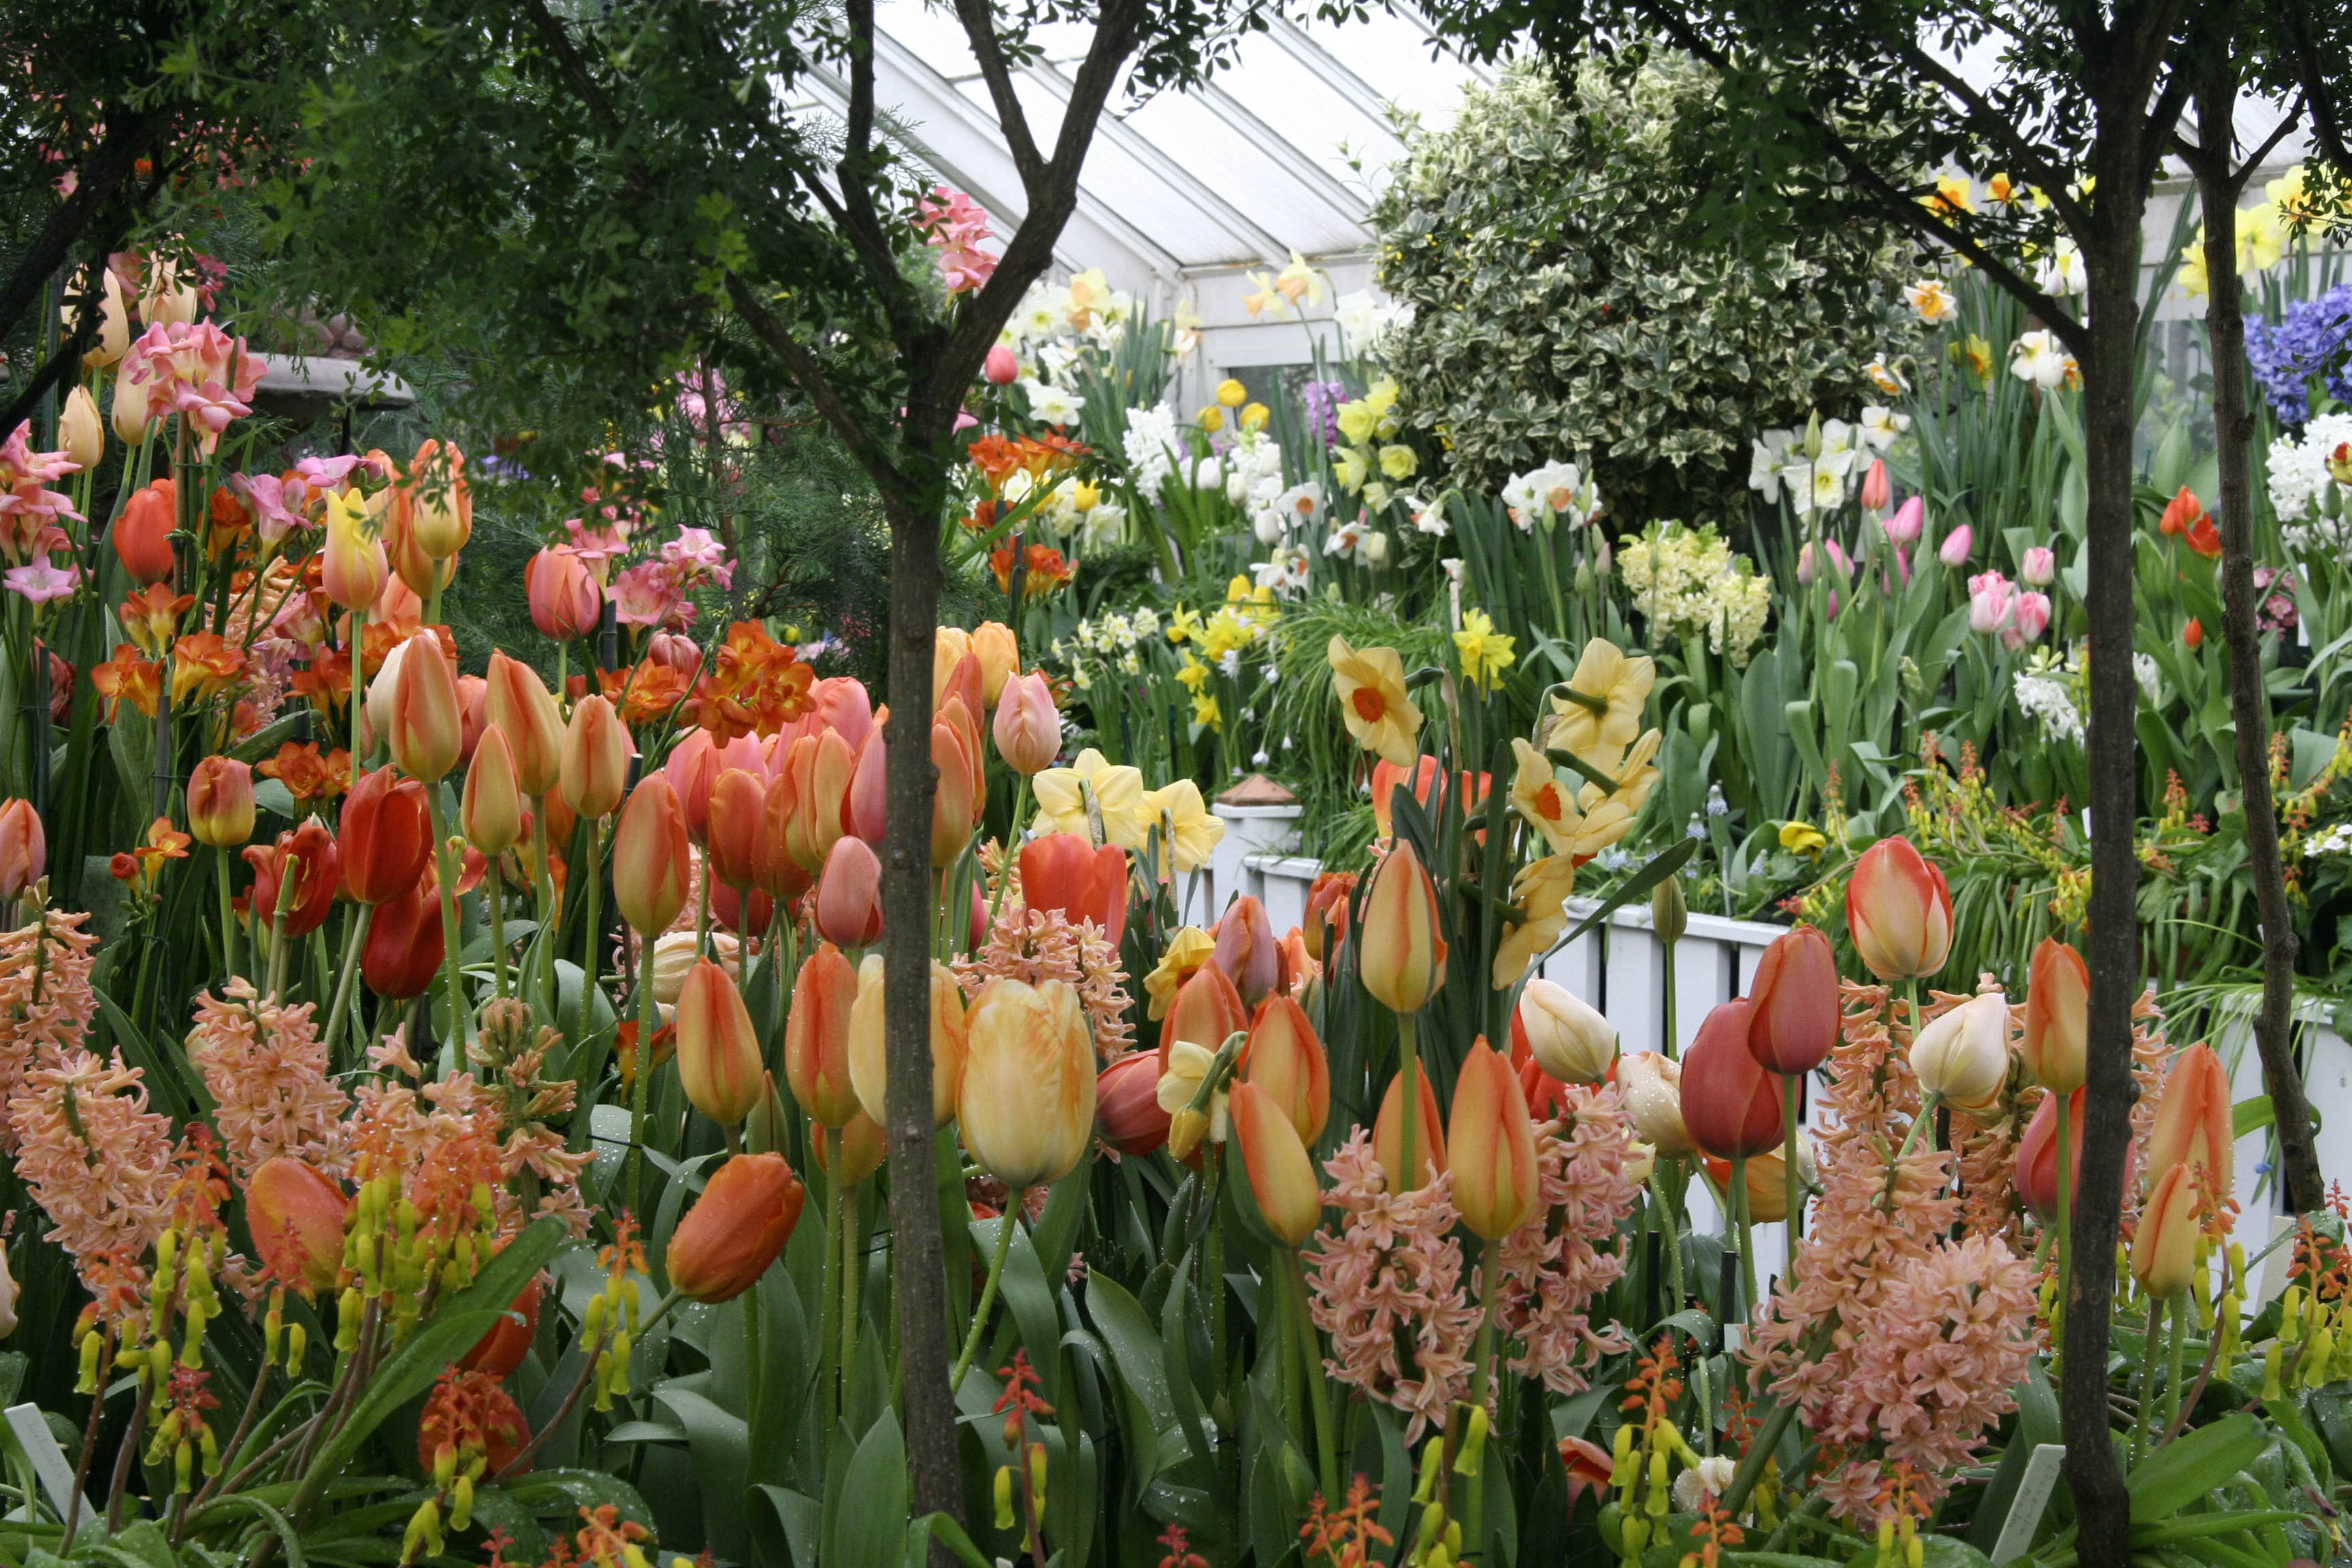 Spring Bulb Show in the greenhouse